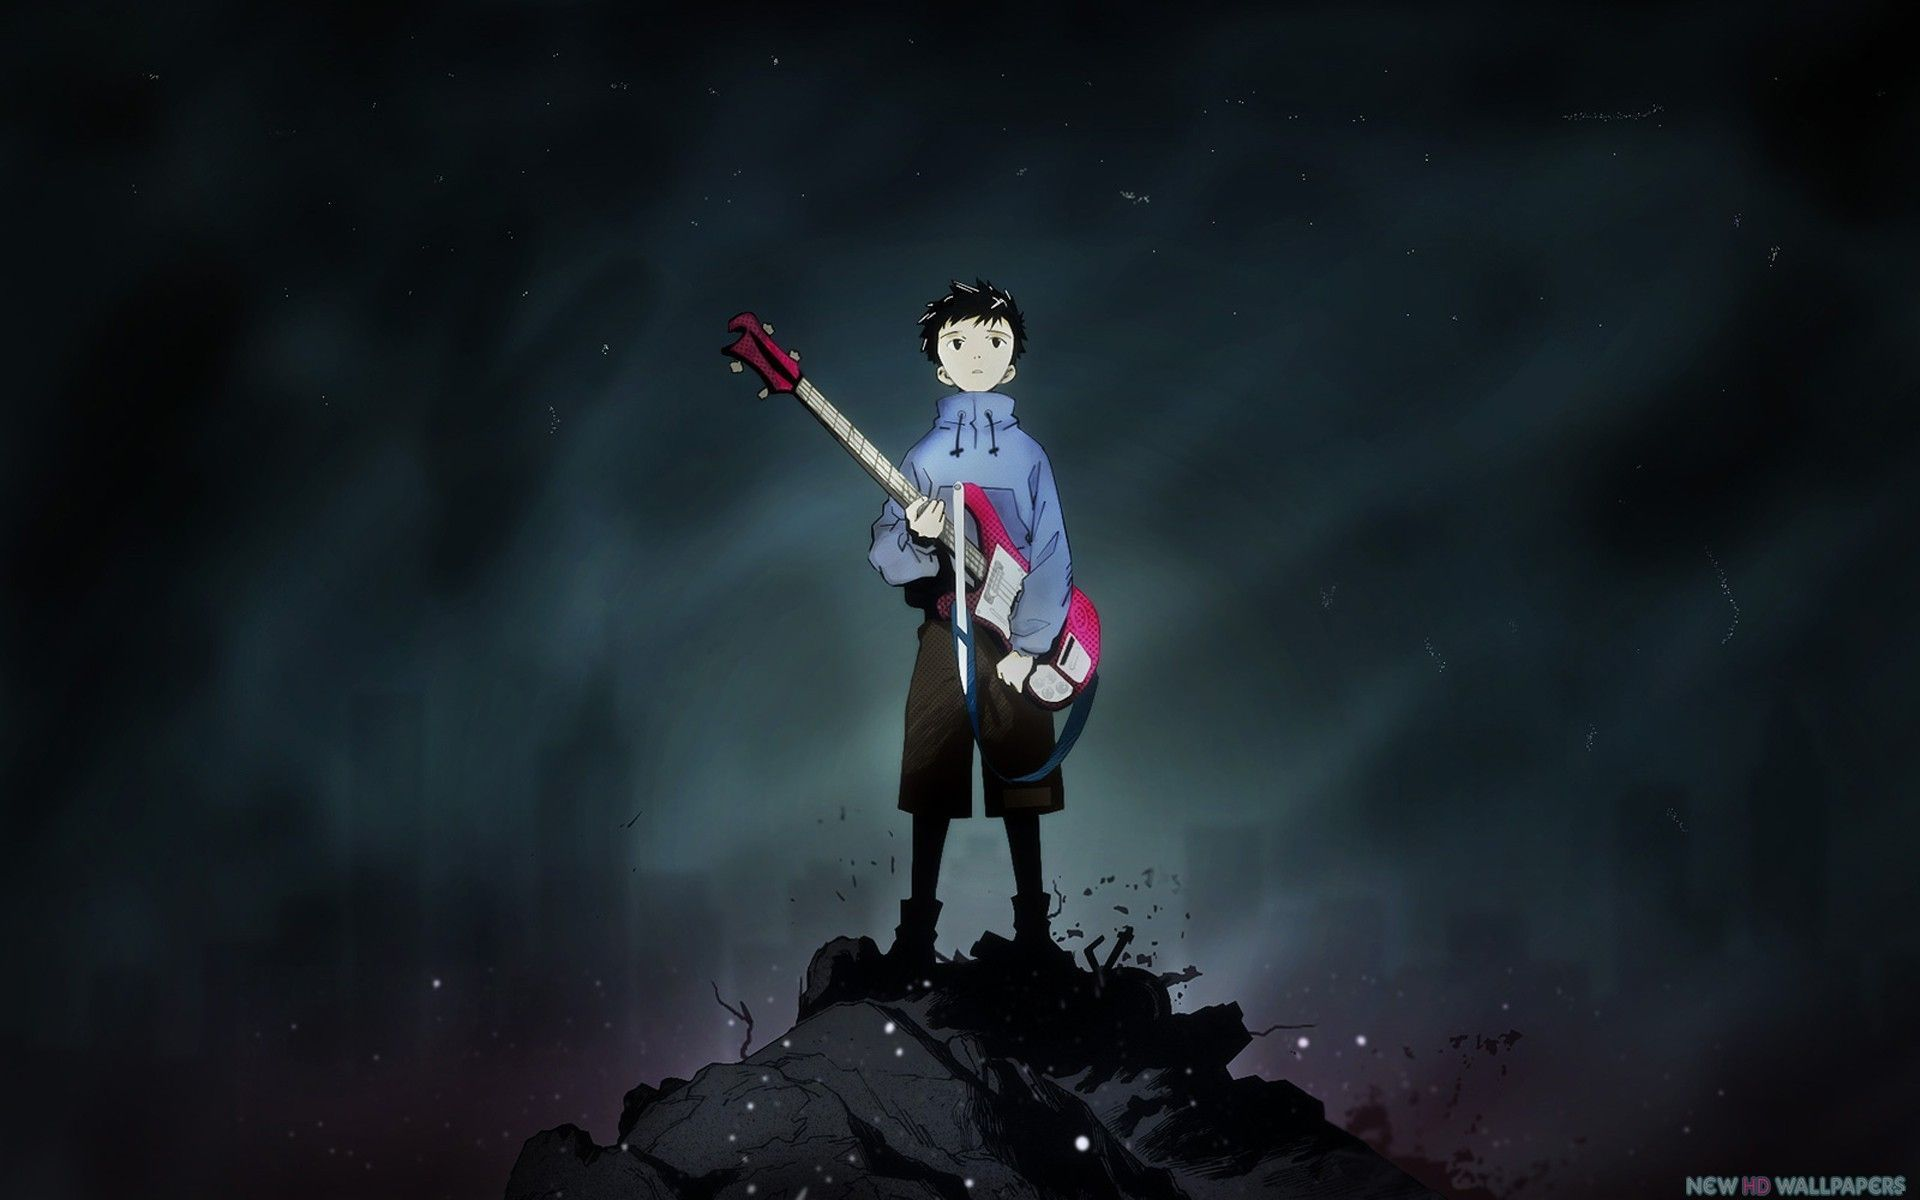 Hd wallpaper boy - Find This Pin And More On Hd Wallpapers